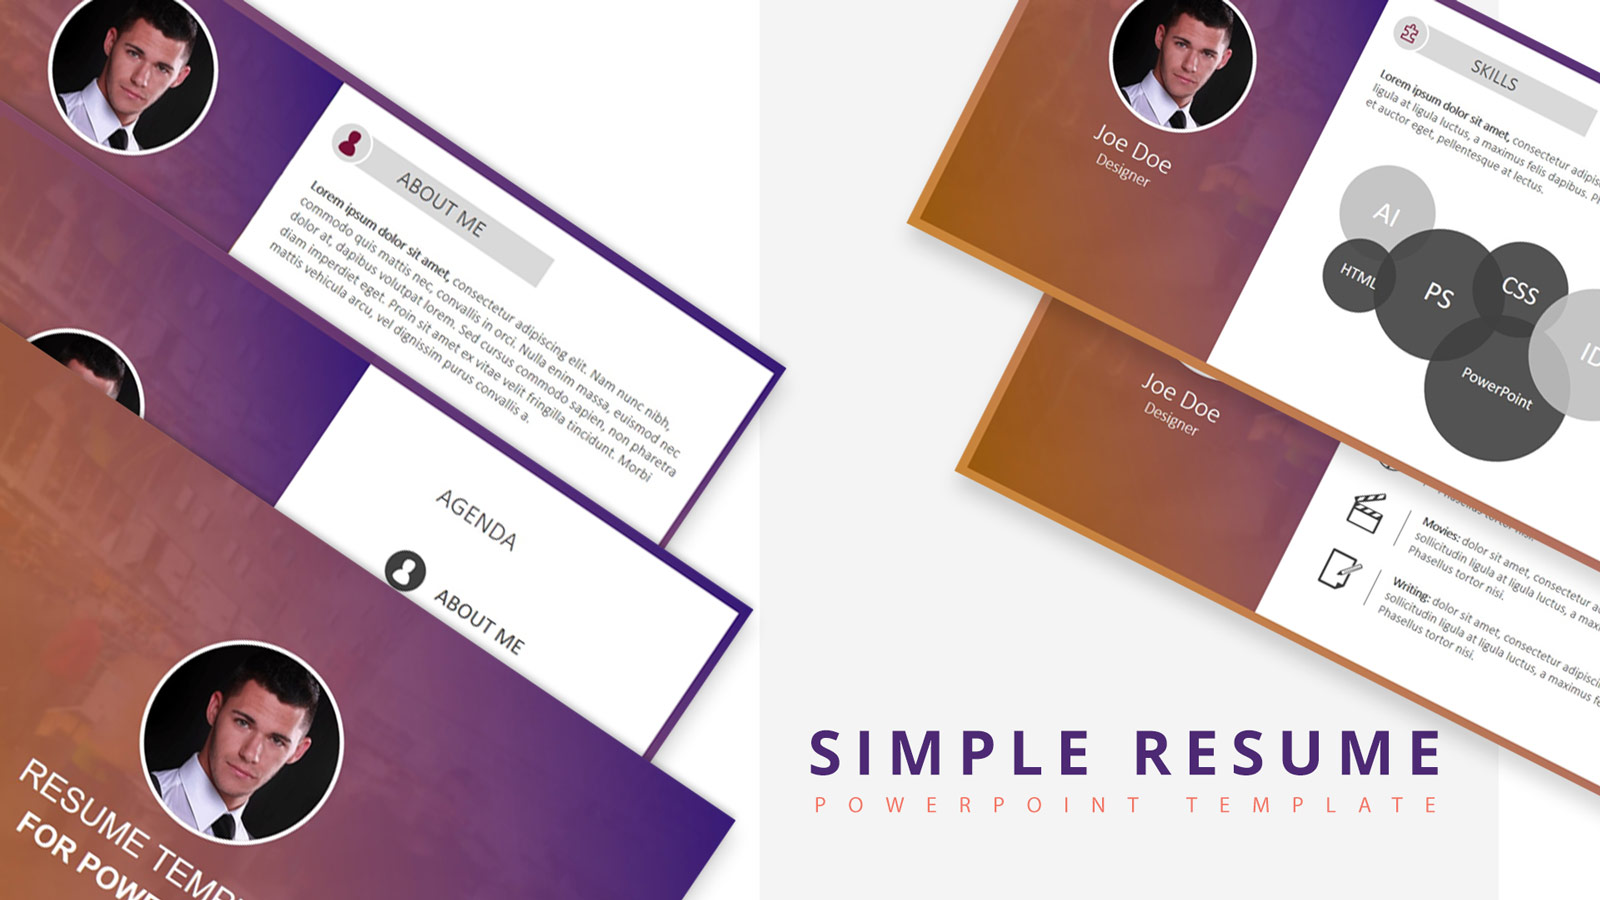 free simple resume powerpoint template